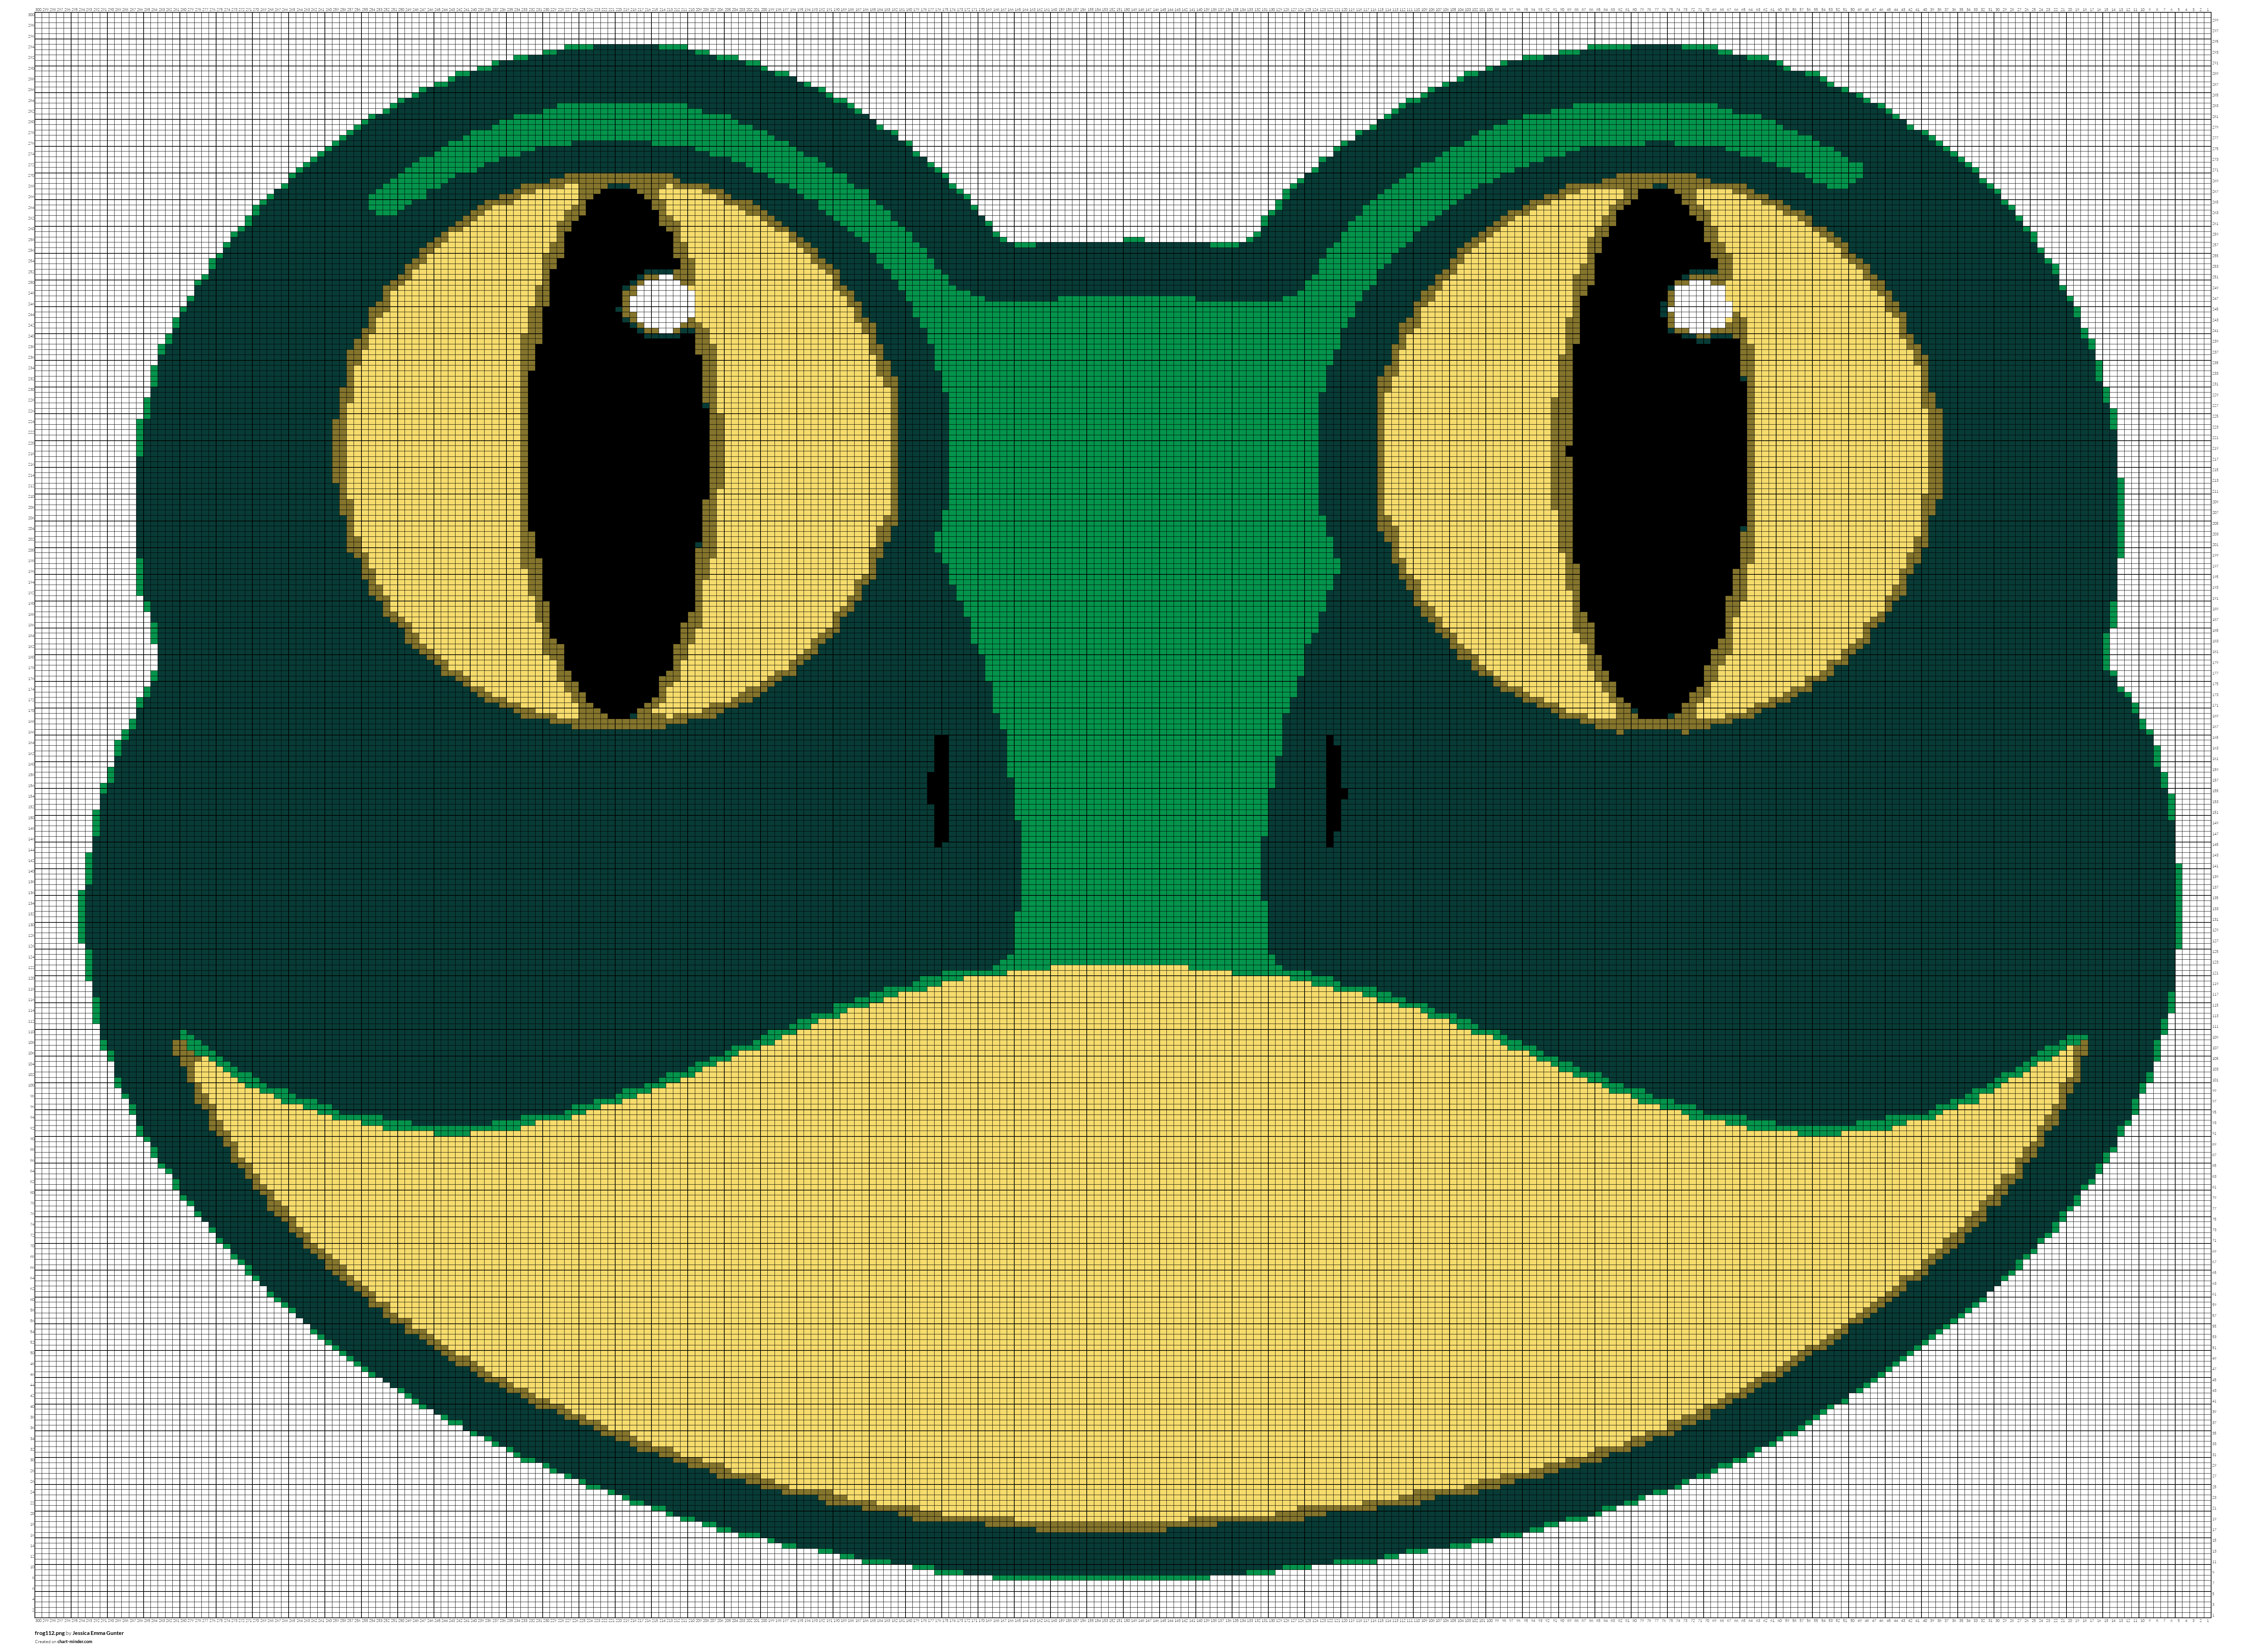 frog112.png